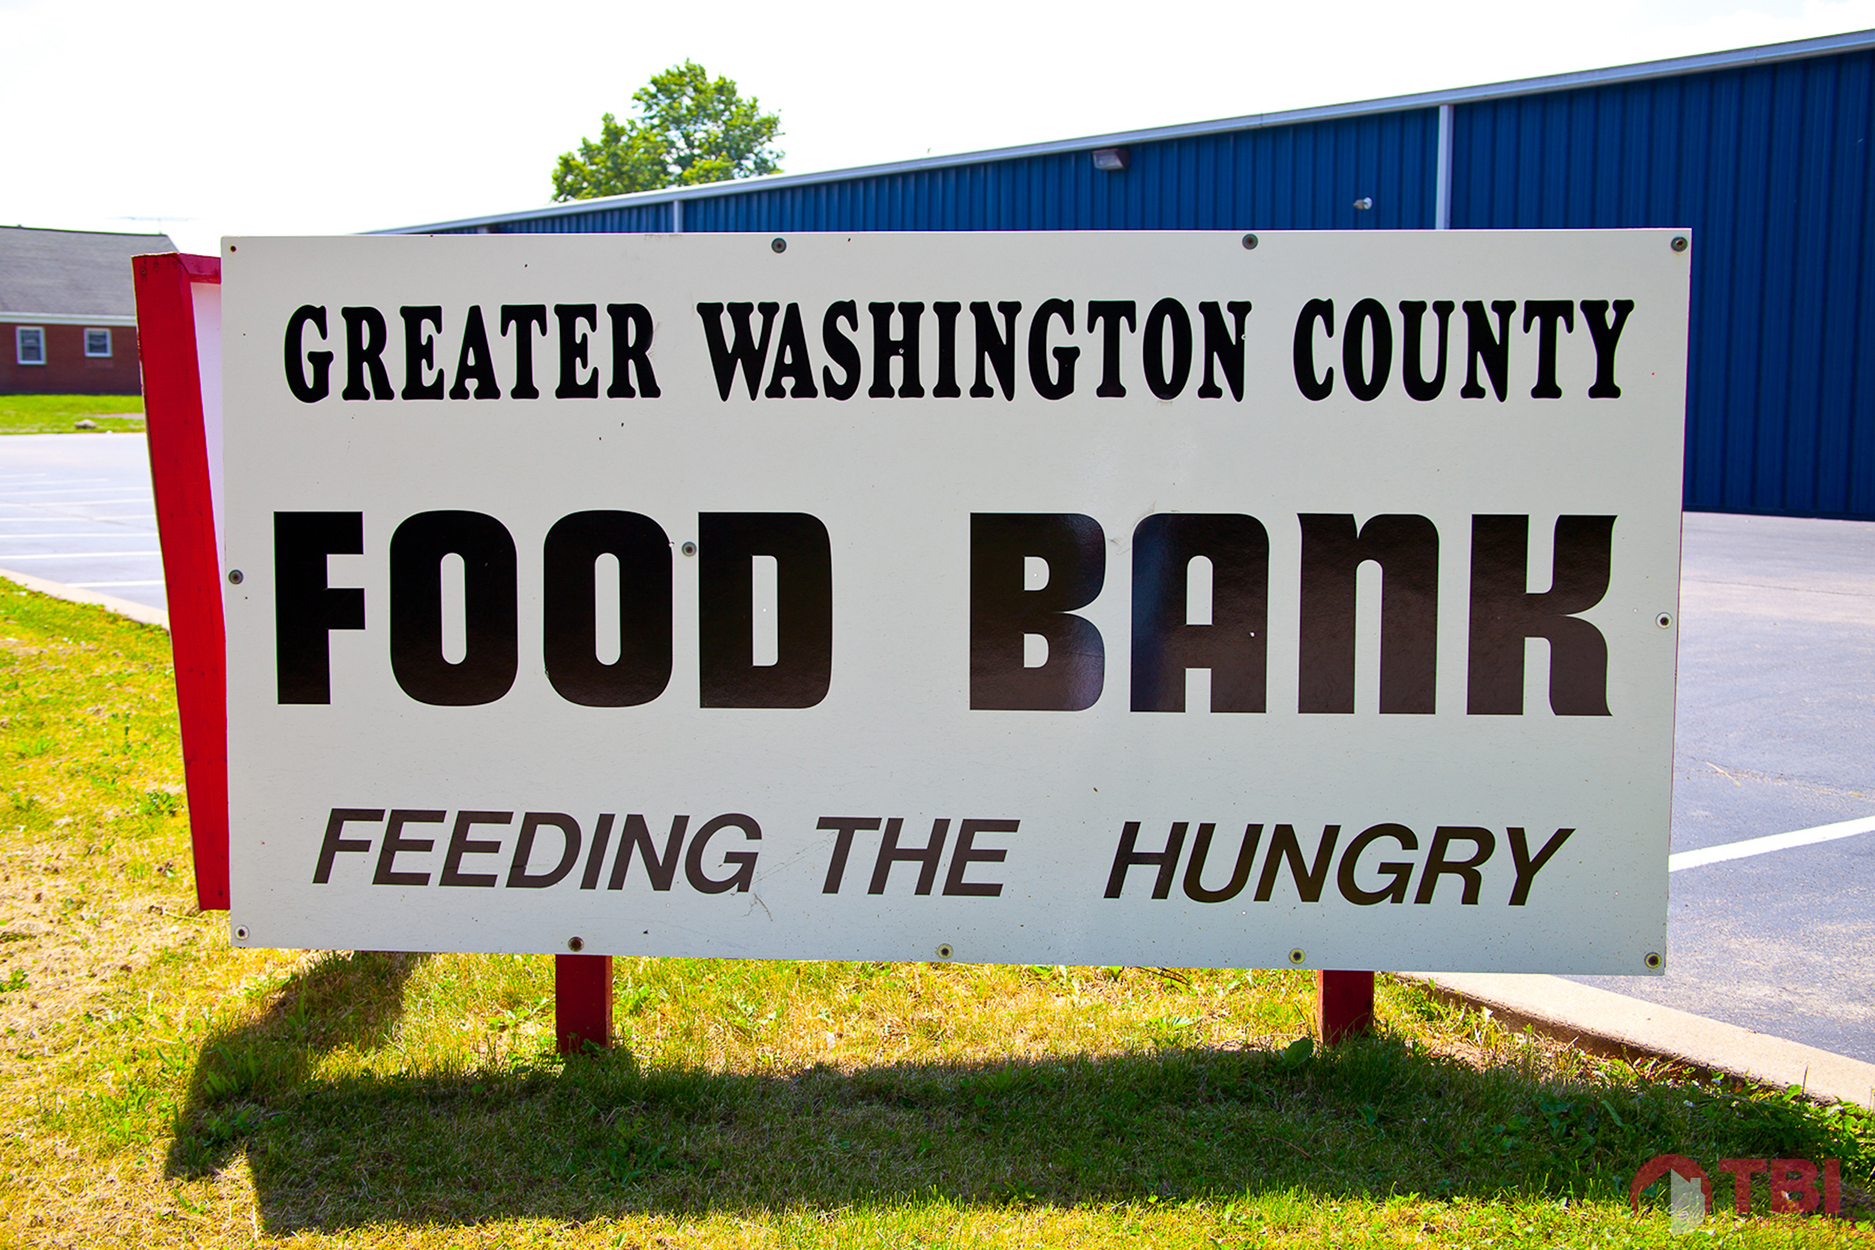 https://tbicontracting.com/wp-content/uploads/2015/04/washington-county-food-bank-building-6.jpg